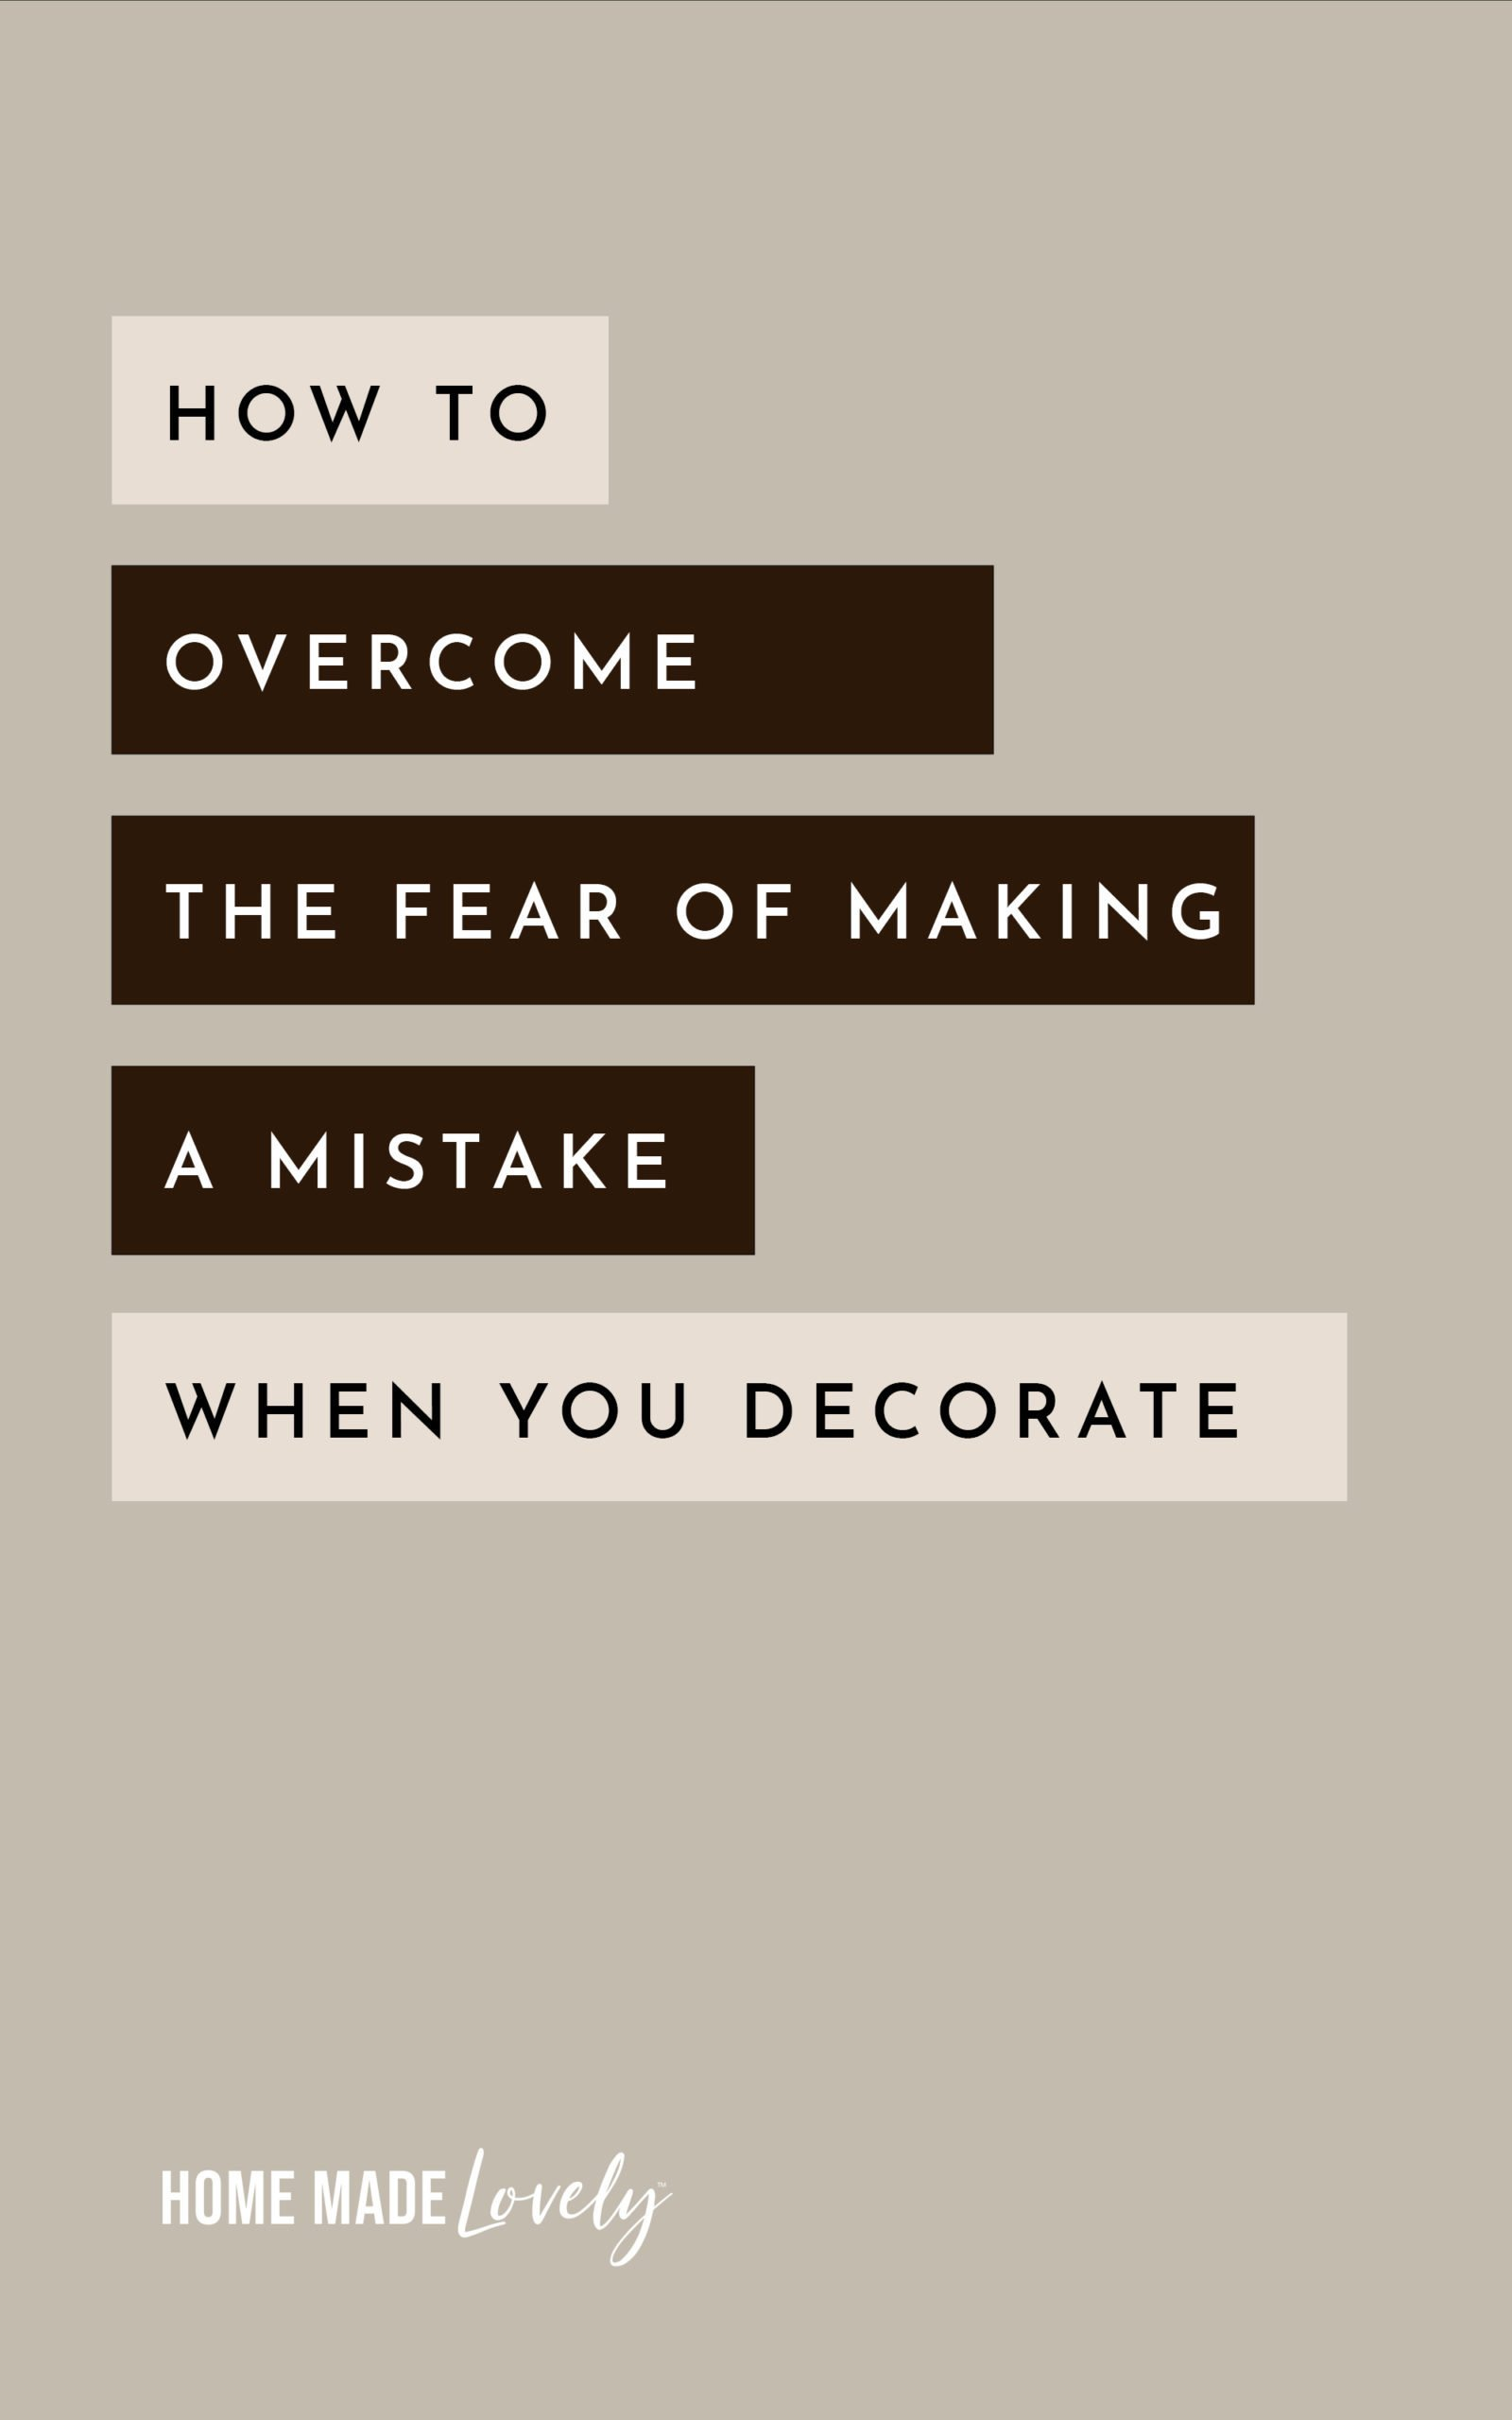 How to Overcome the Fear of Making a Mistake When You Decorate